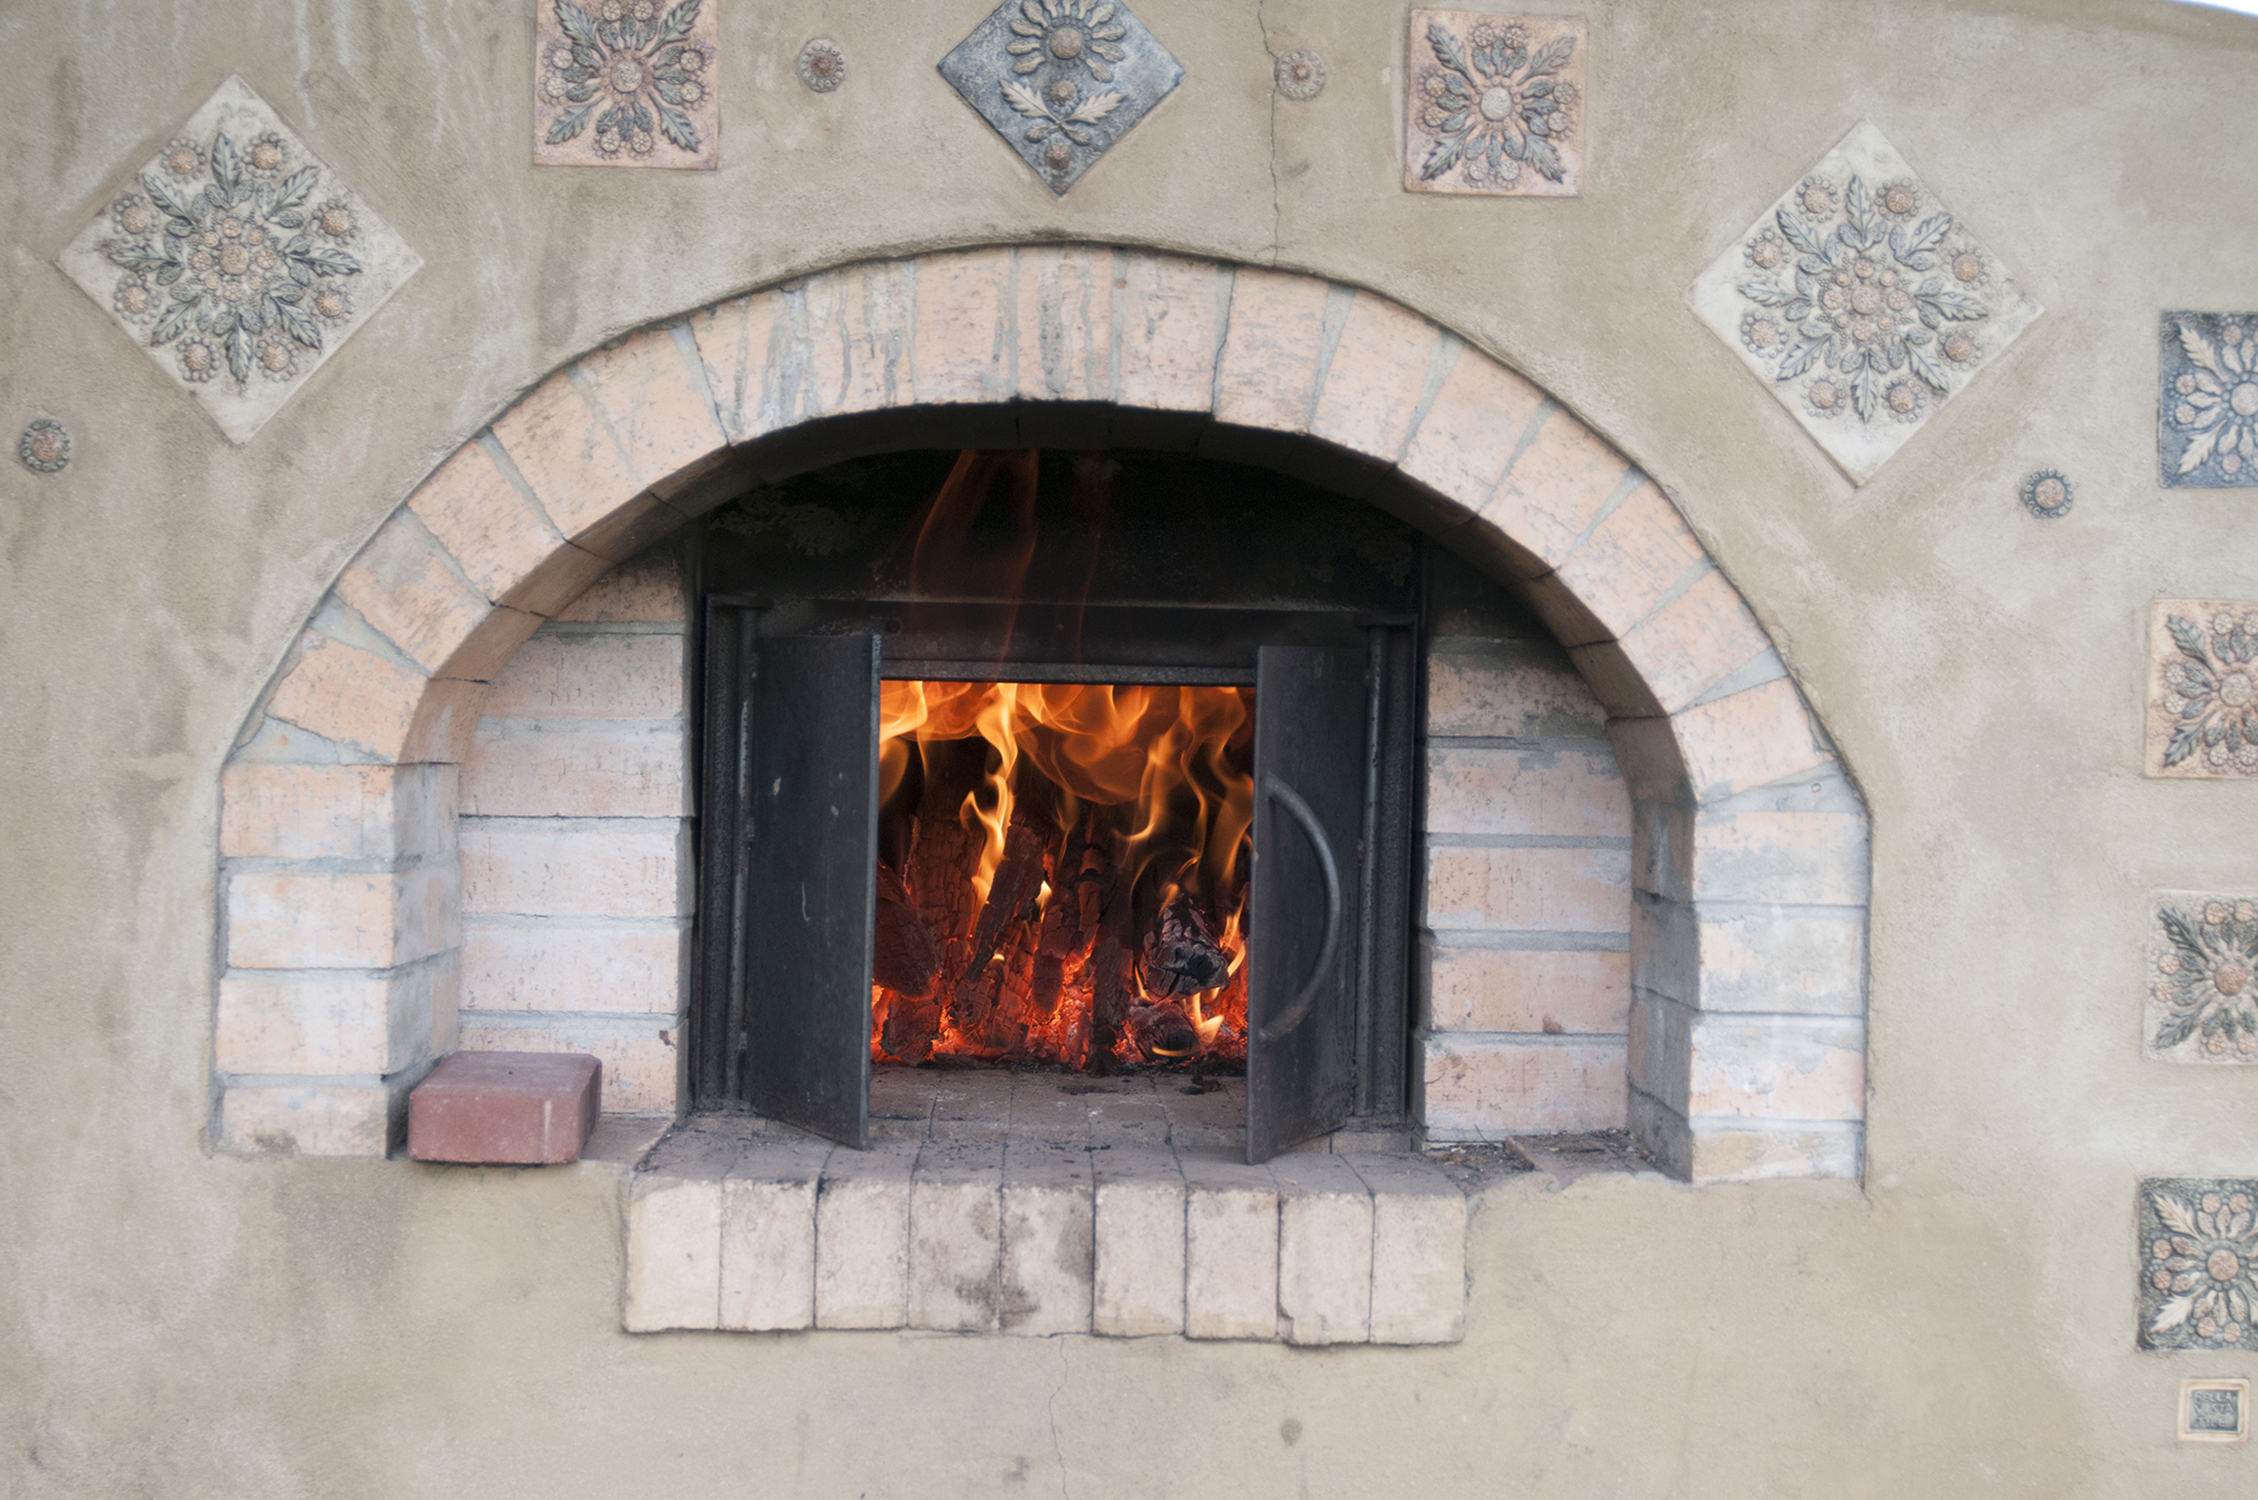 Wood Fired Cooking: Falling in Love with Falling Heat